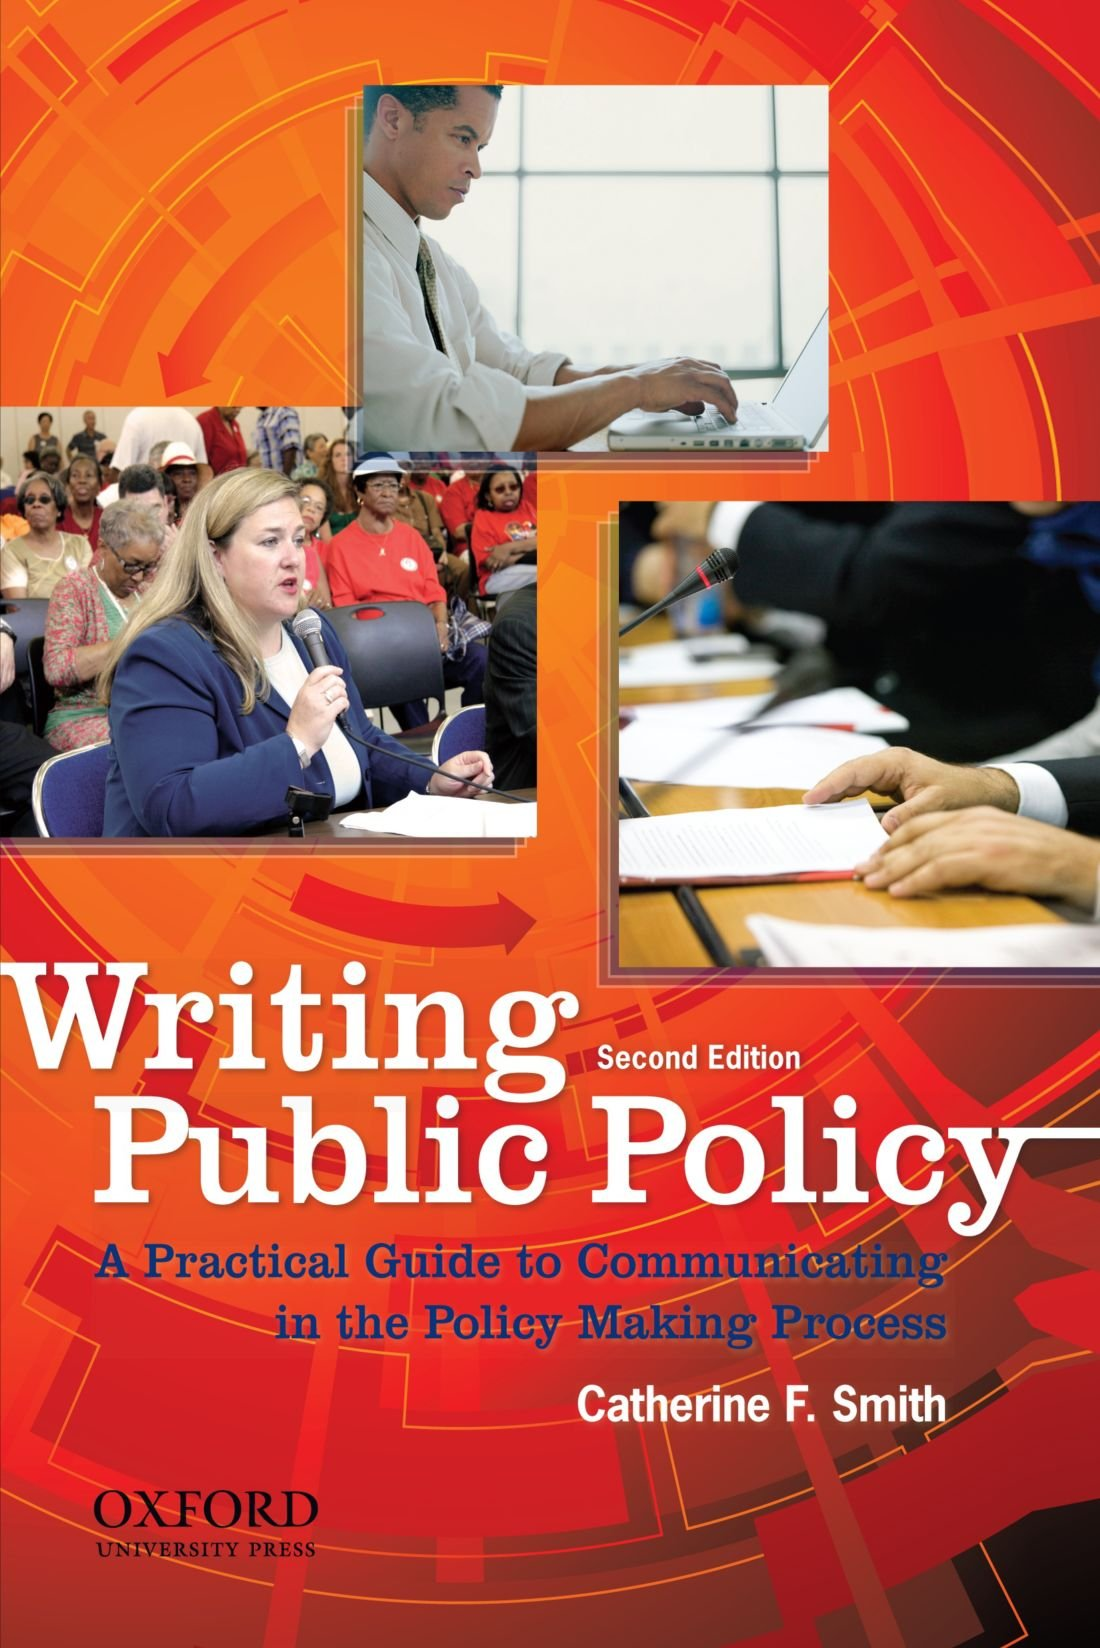 Writing Public Policy: A Practical Guide to Communicating in the Policy-Making Process by Oxford University Press